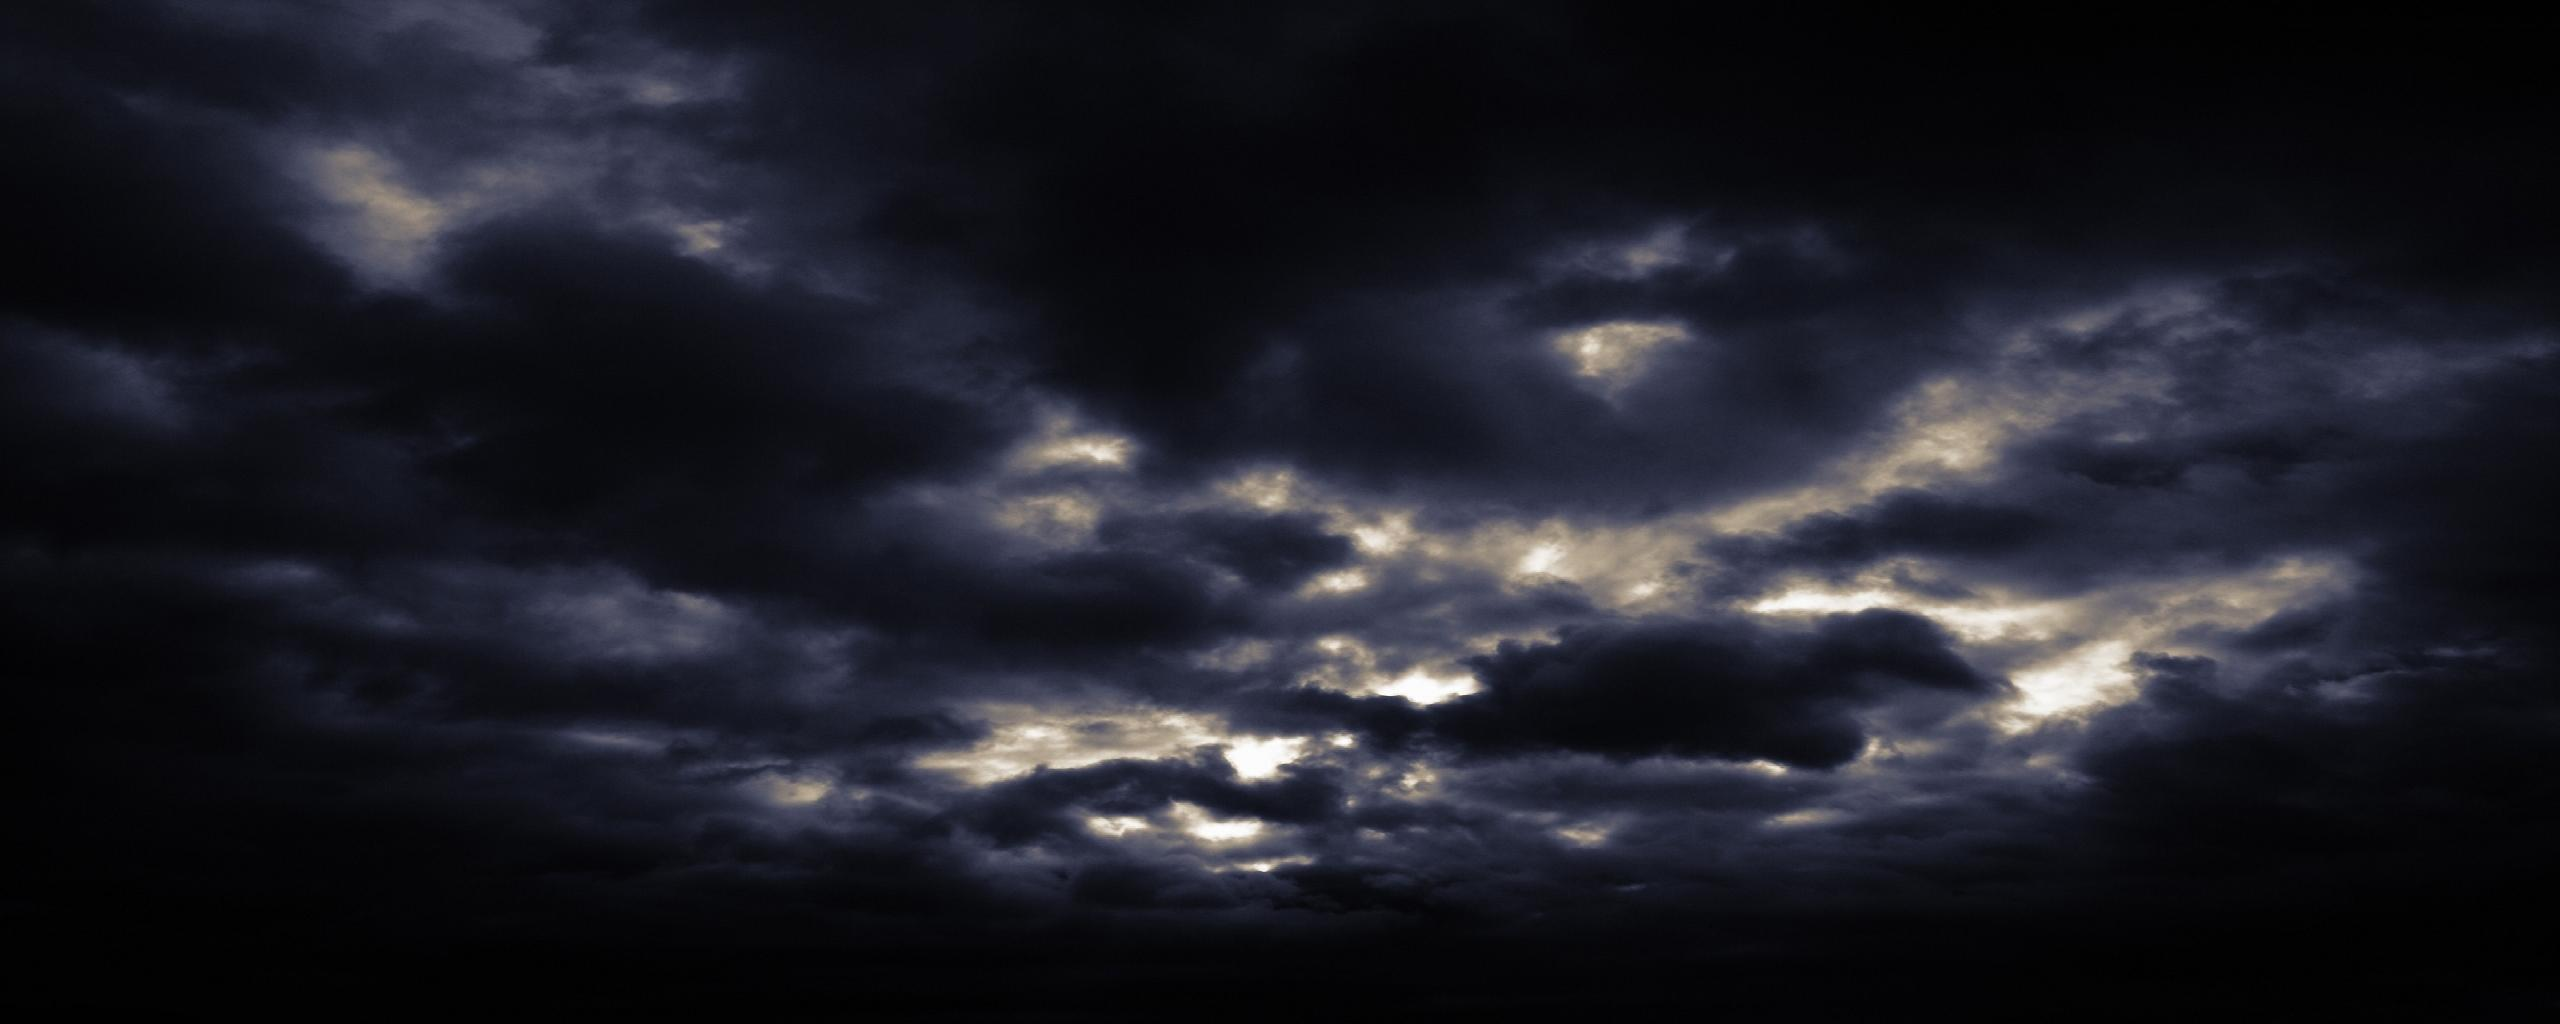 2560x1024 - Dark Sky Background 3